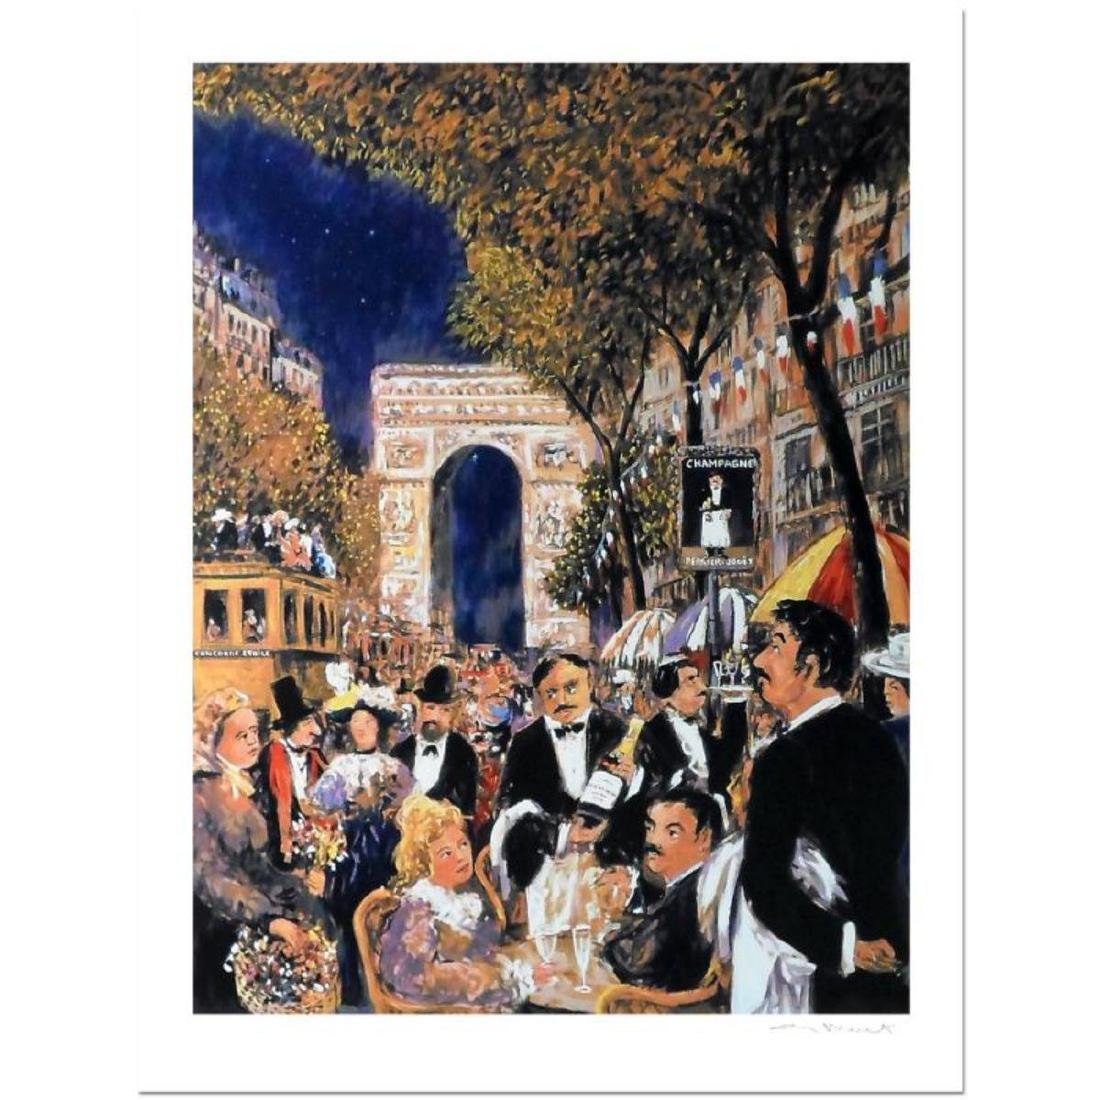 Awe Inspiring Guy Buffet Champs Elysees Limited Edition Serigraph Download Free Architecture Designs Scobabritishbridgeorg